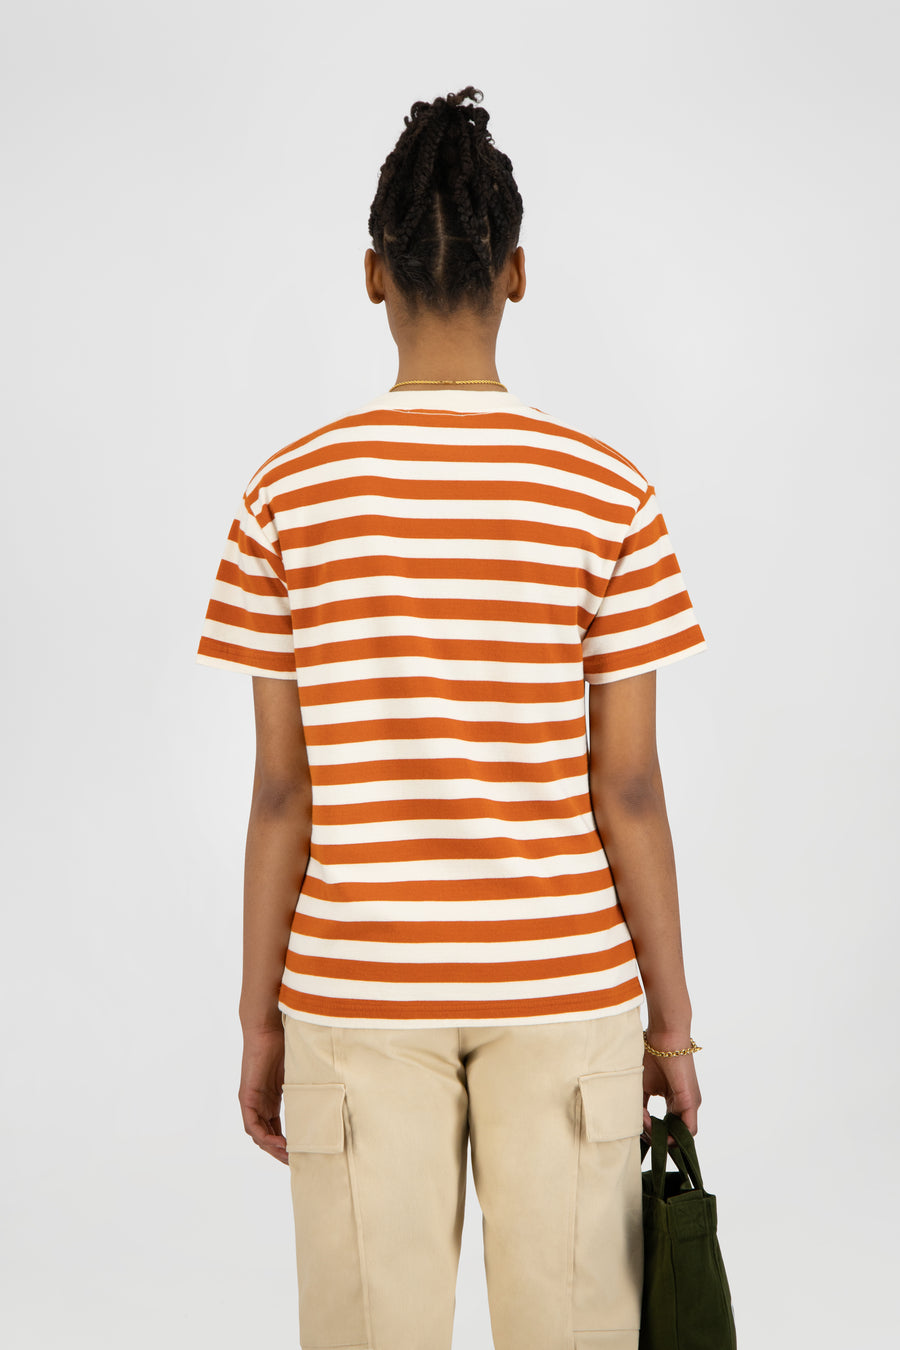 ØLÅF Stripe Sans Tee - White / Orange